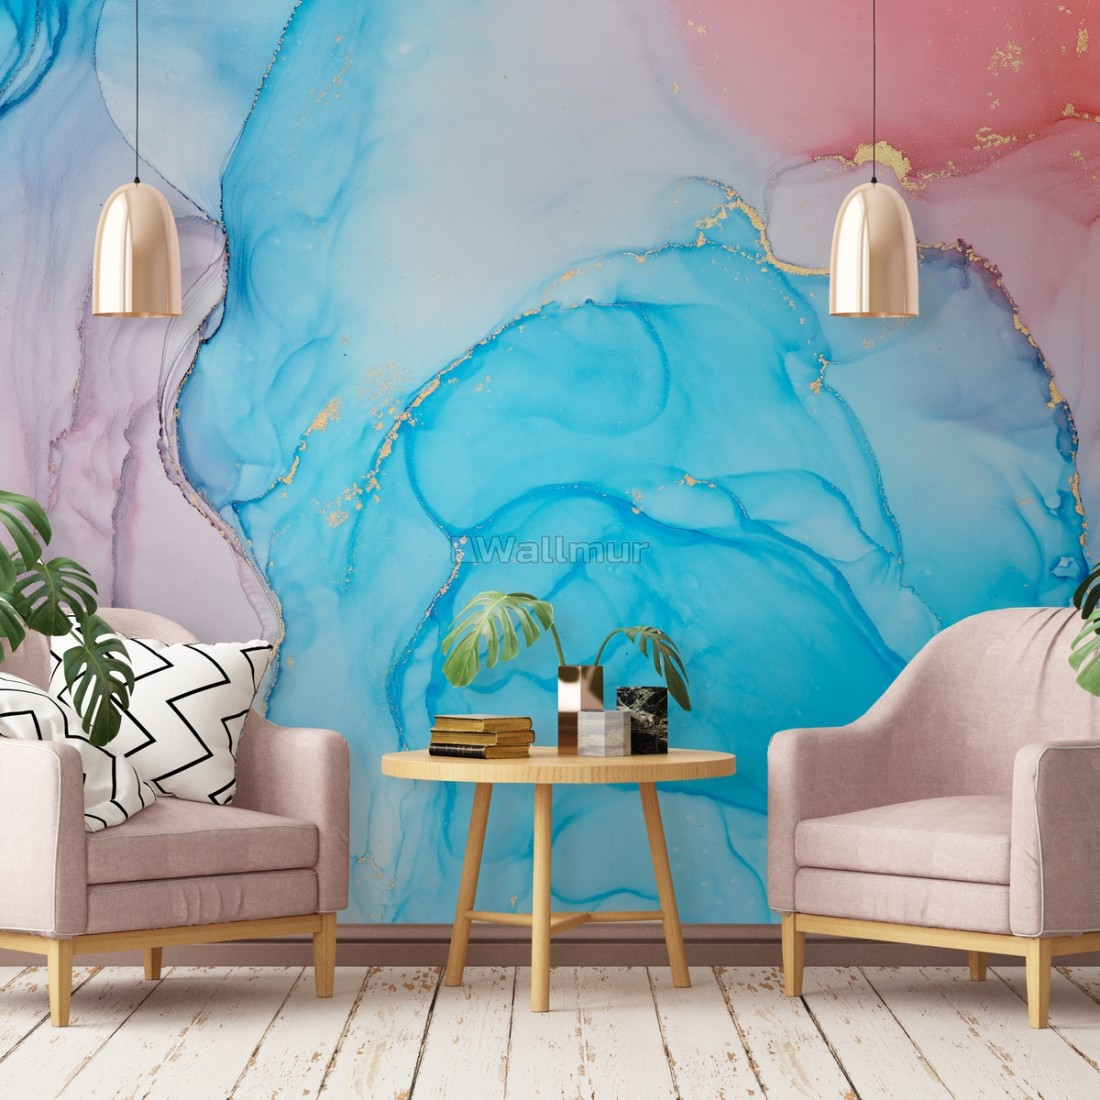 Blue Marble With Red Splash Wallpaper Mural Wallpaper Wallmur